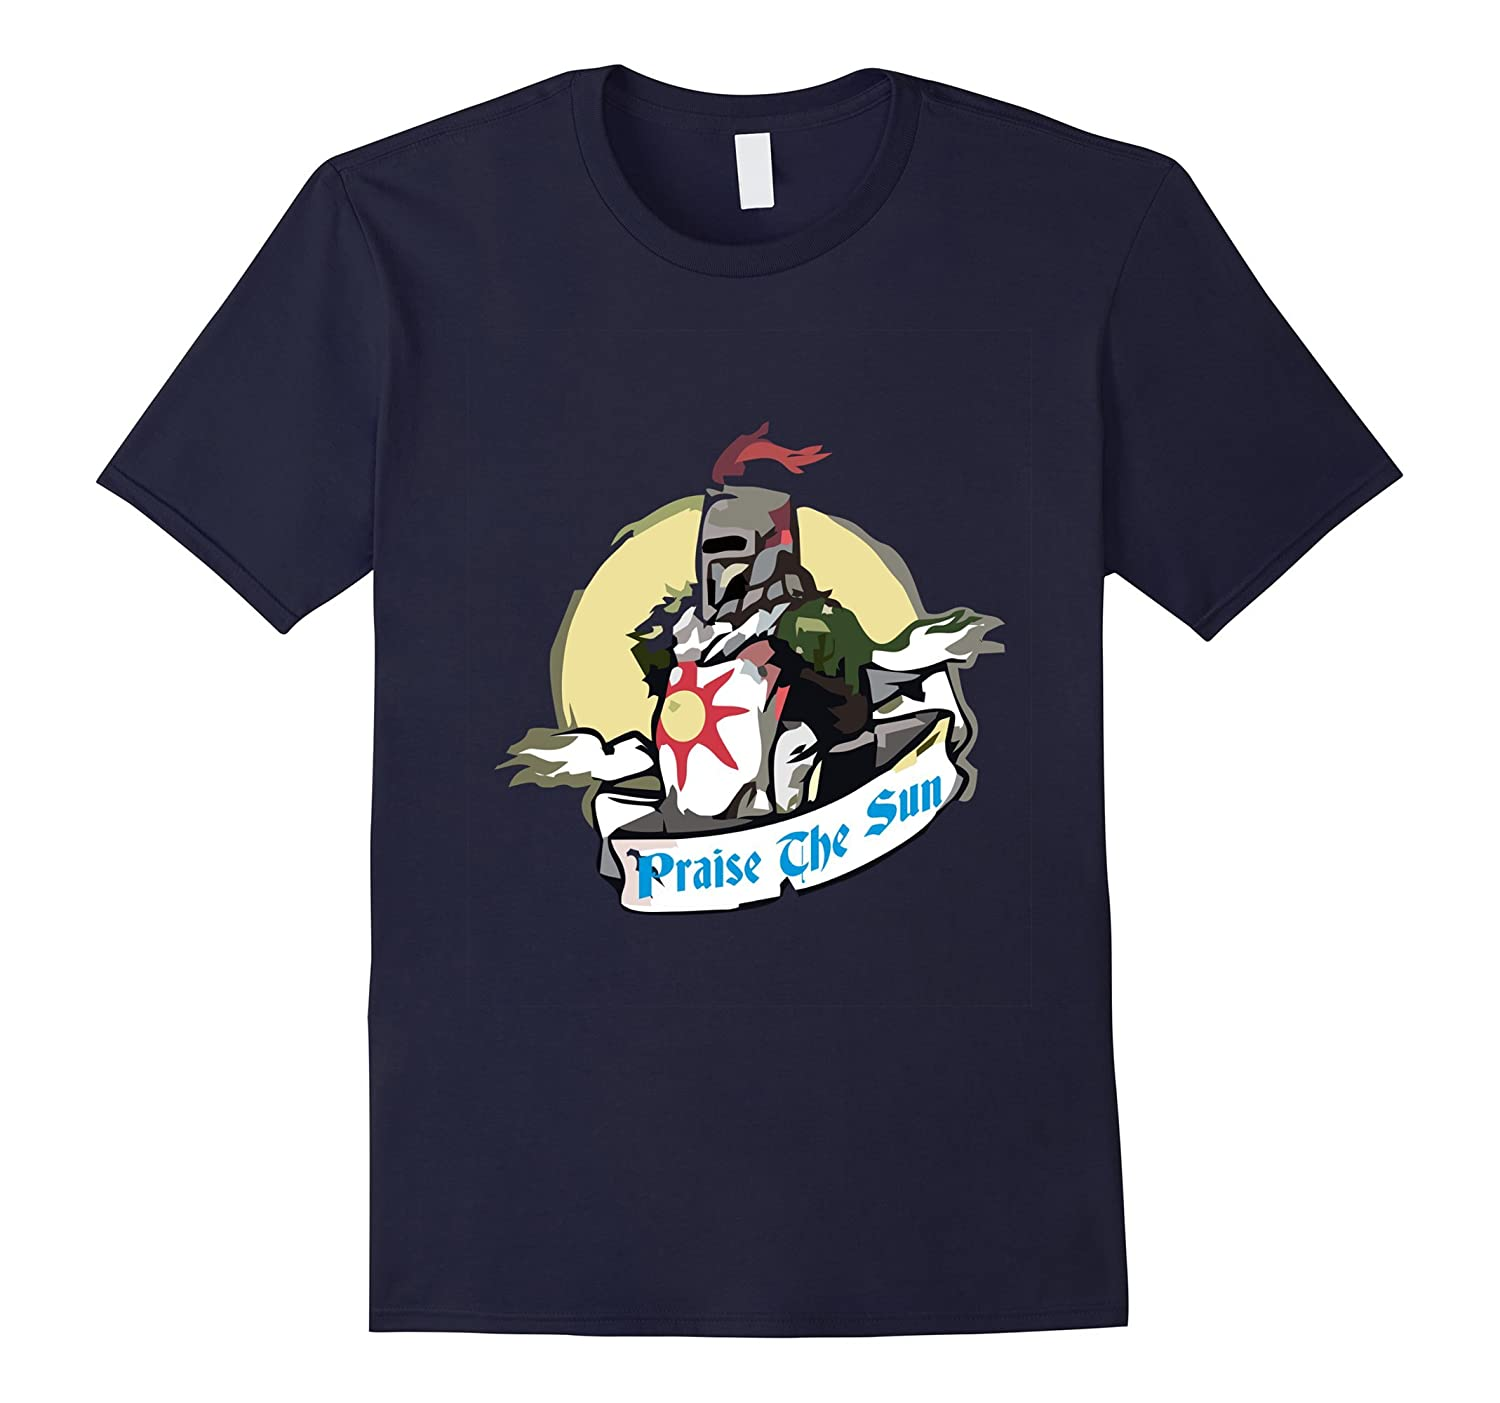 Praise T shirt The Sun Dark knight soul-TD